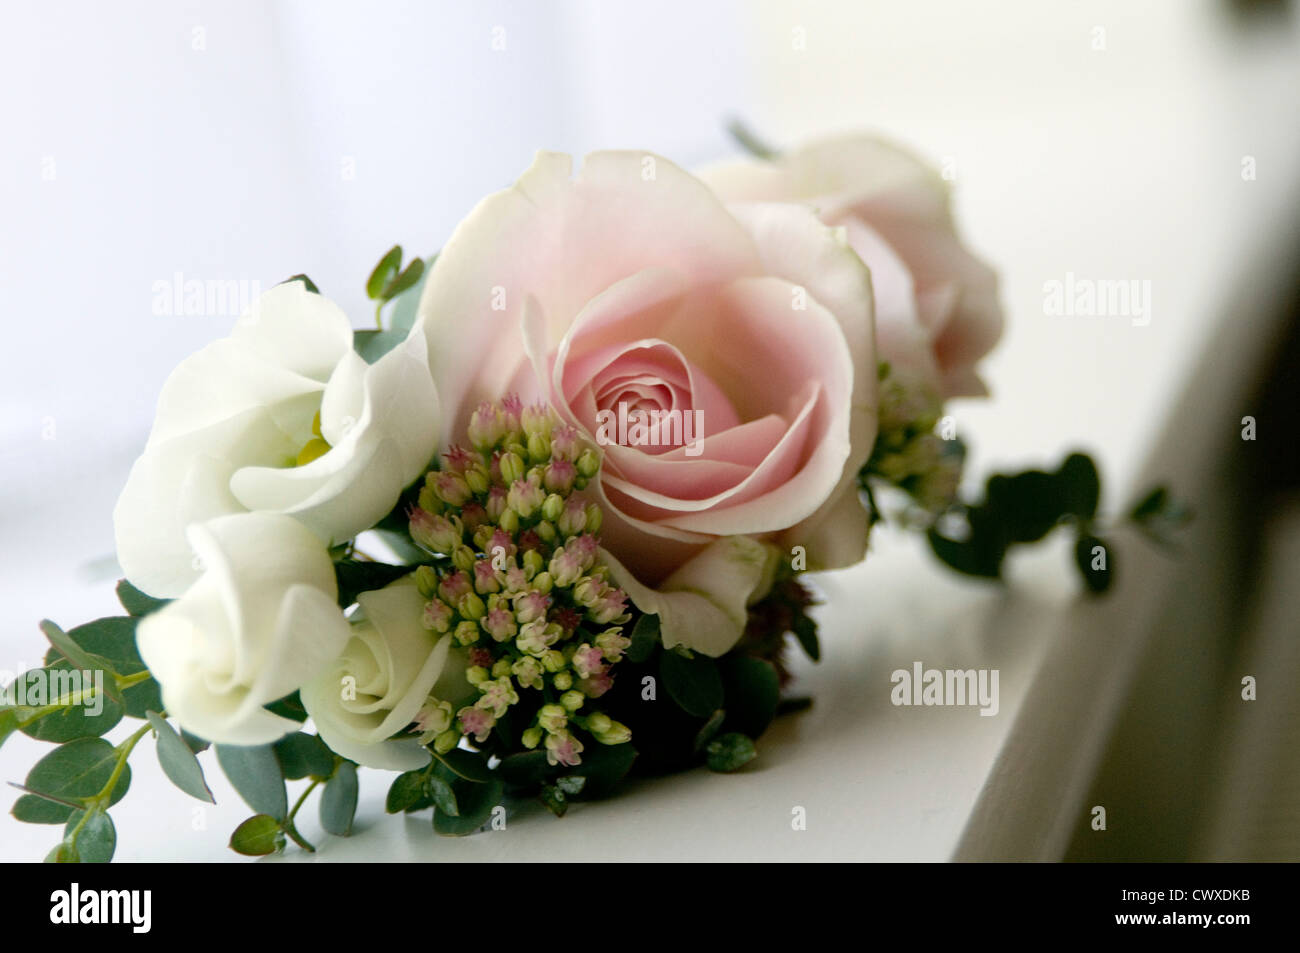 Flower Flowers Wedding Day Florist Florists Rose Roses Button Hole Stock Photo Alamy